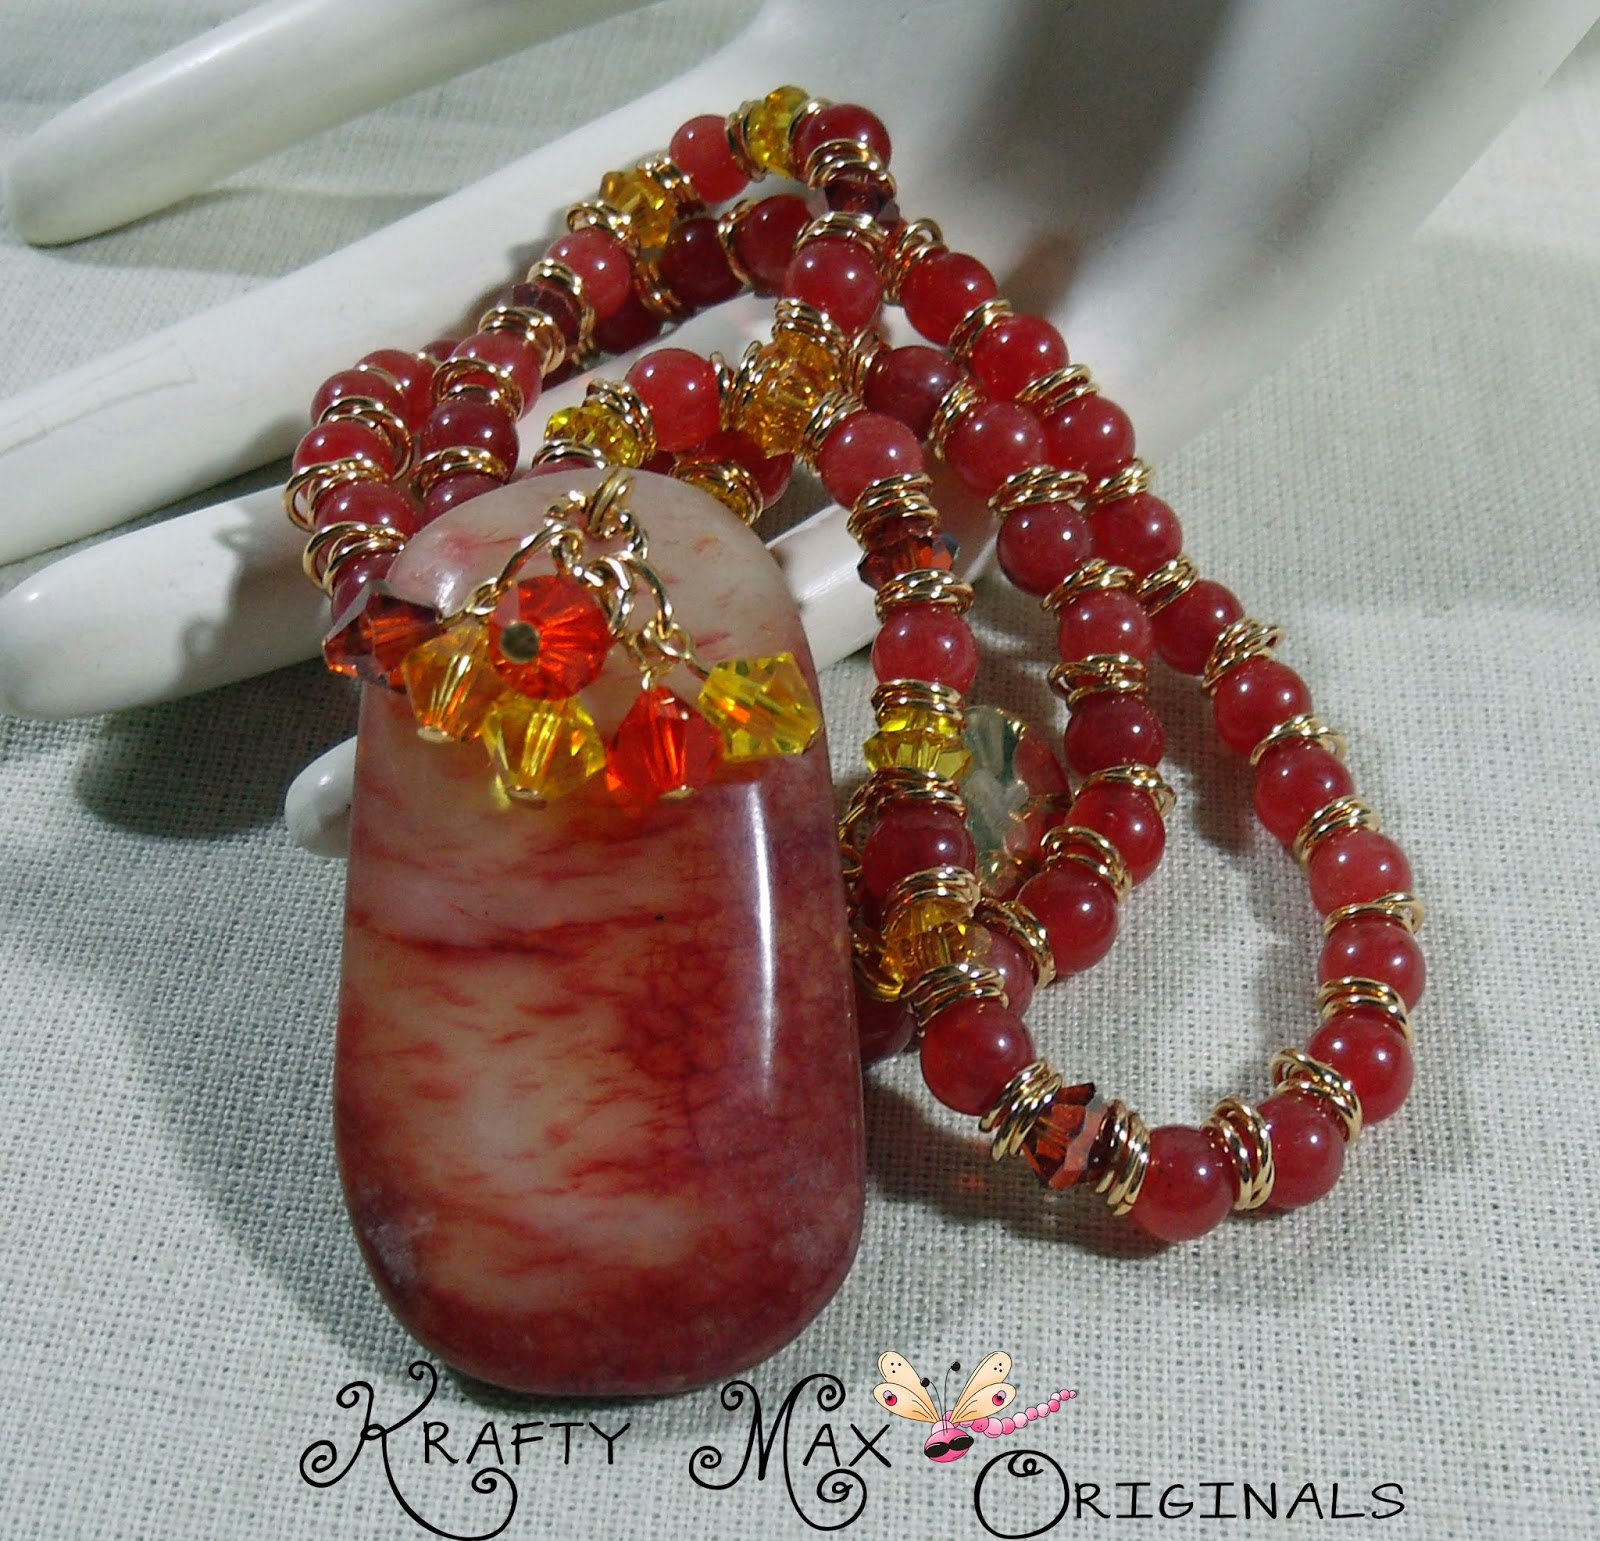 http://www.lajuliet.com/index.php/sell/ad/gemstone,92/exclusive-bloodstone-and-swarovski-crystal-golden-necklace-set-a-krafty-max-original-design,143